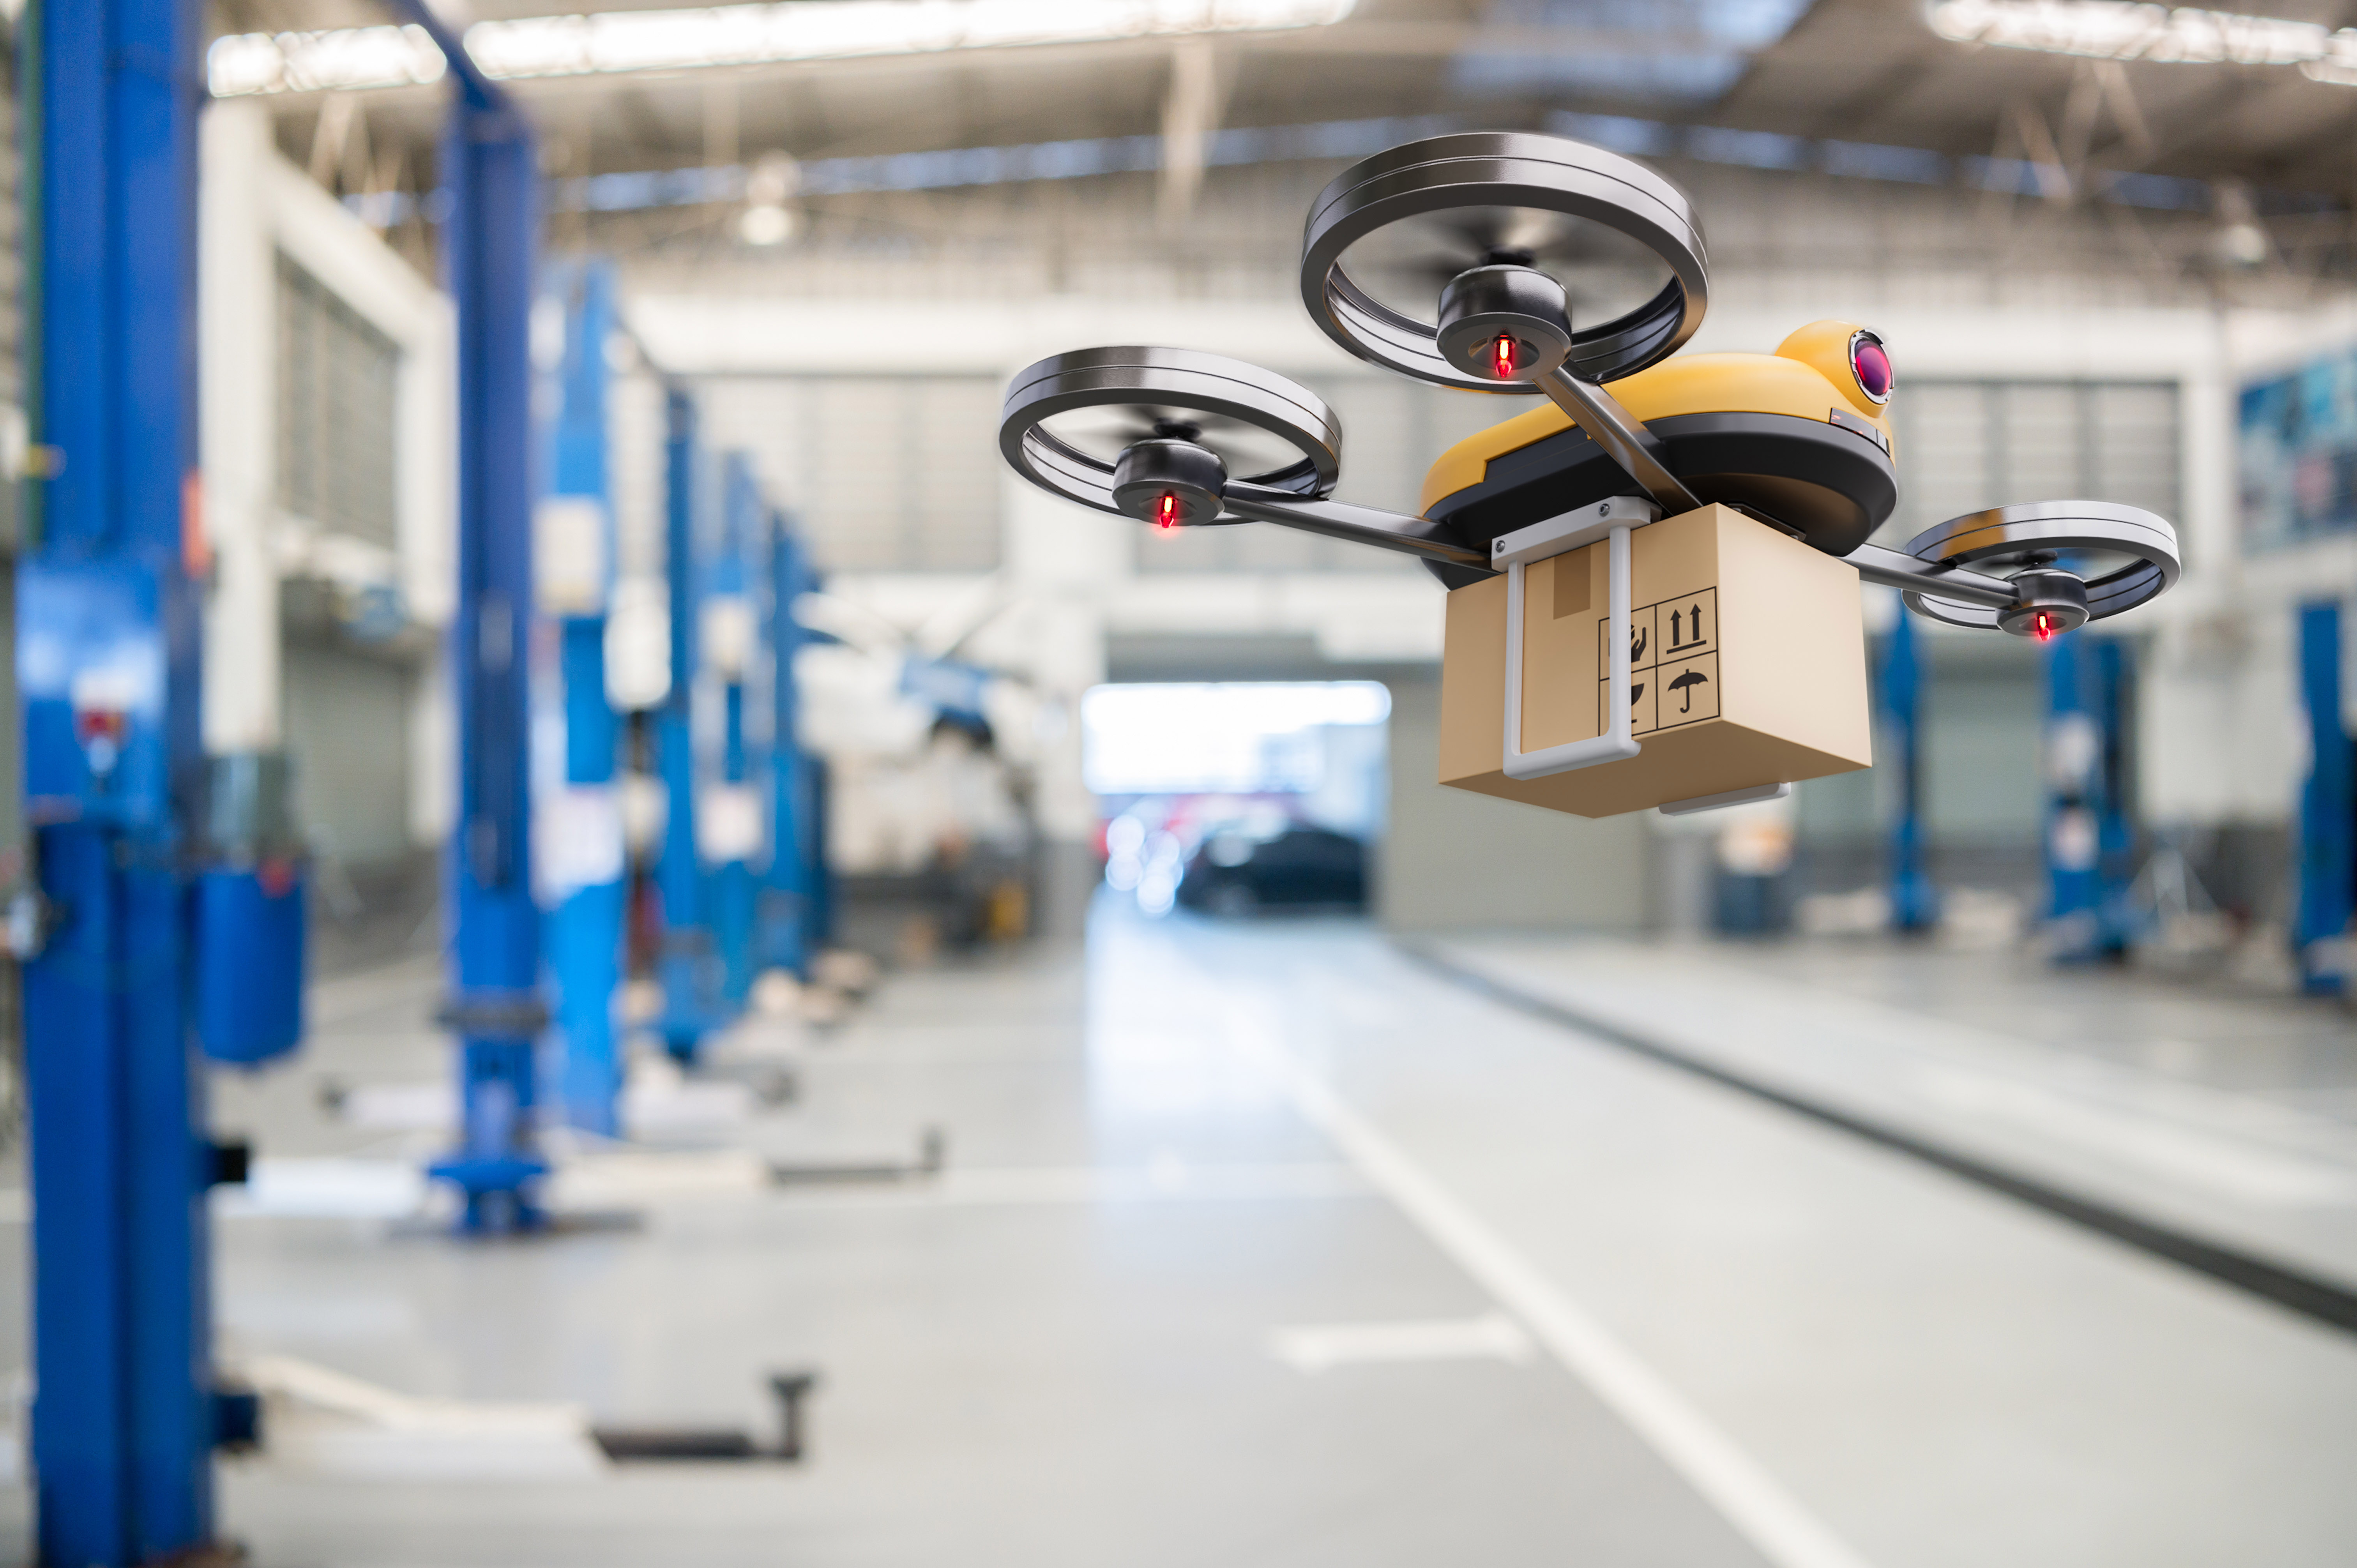 UPS's drone delivery program